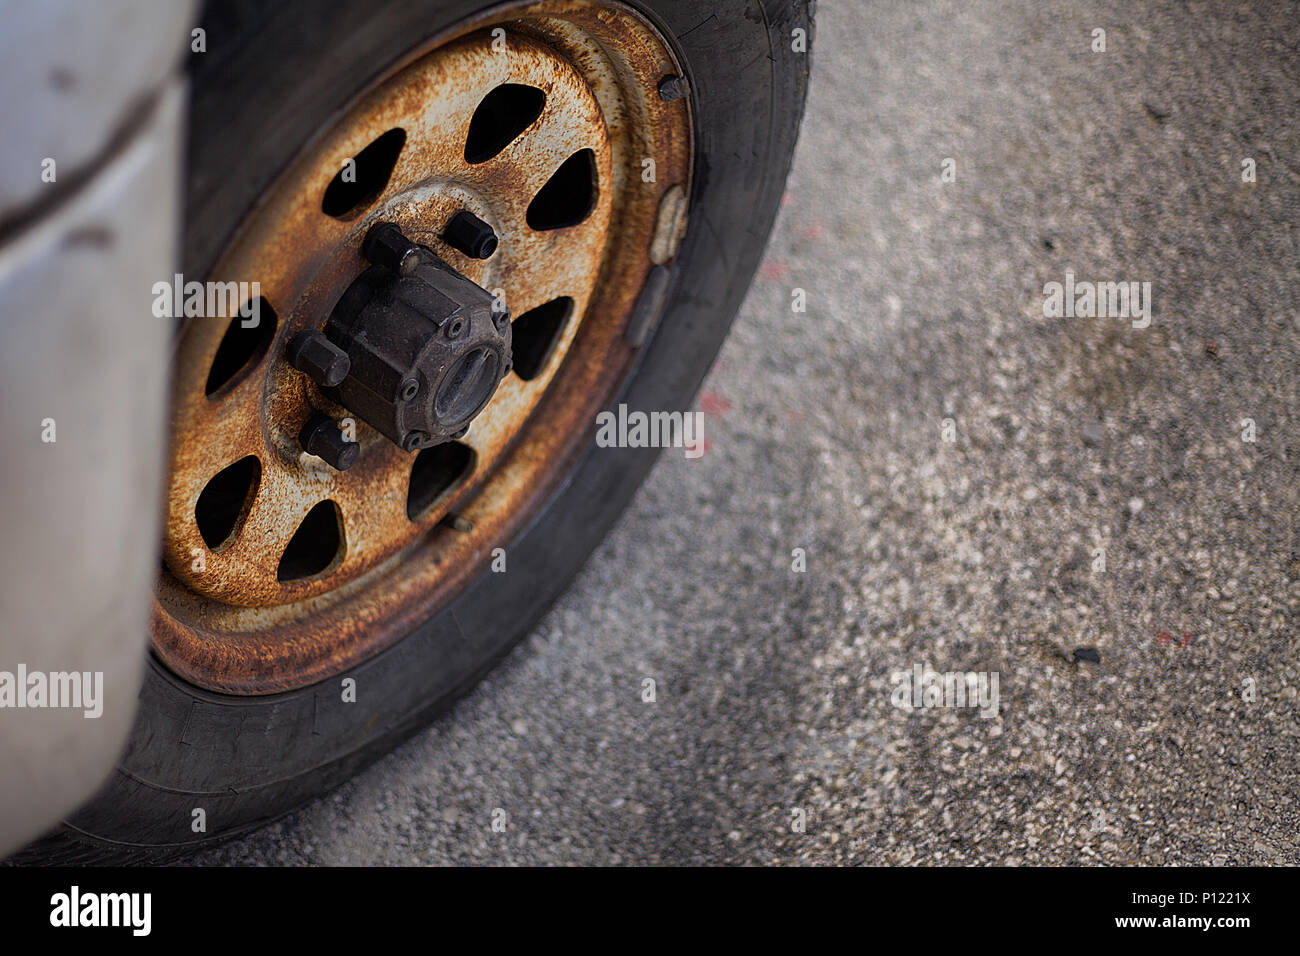 A closeup view of a heavily used car tyre that seems abandoned a longtime ago. There are also rusted rim hubcap and  screws that badly needs maintenan - Stock Image